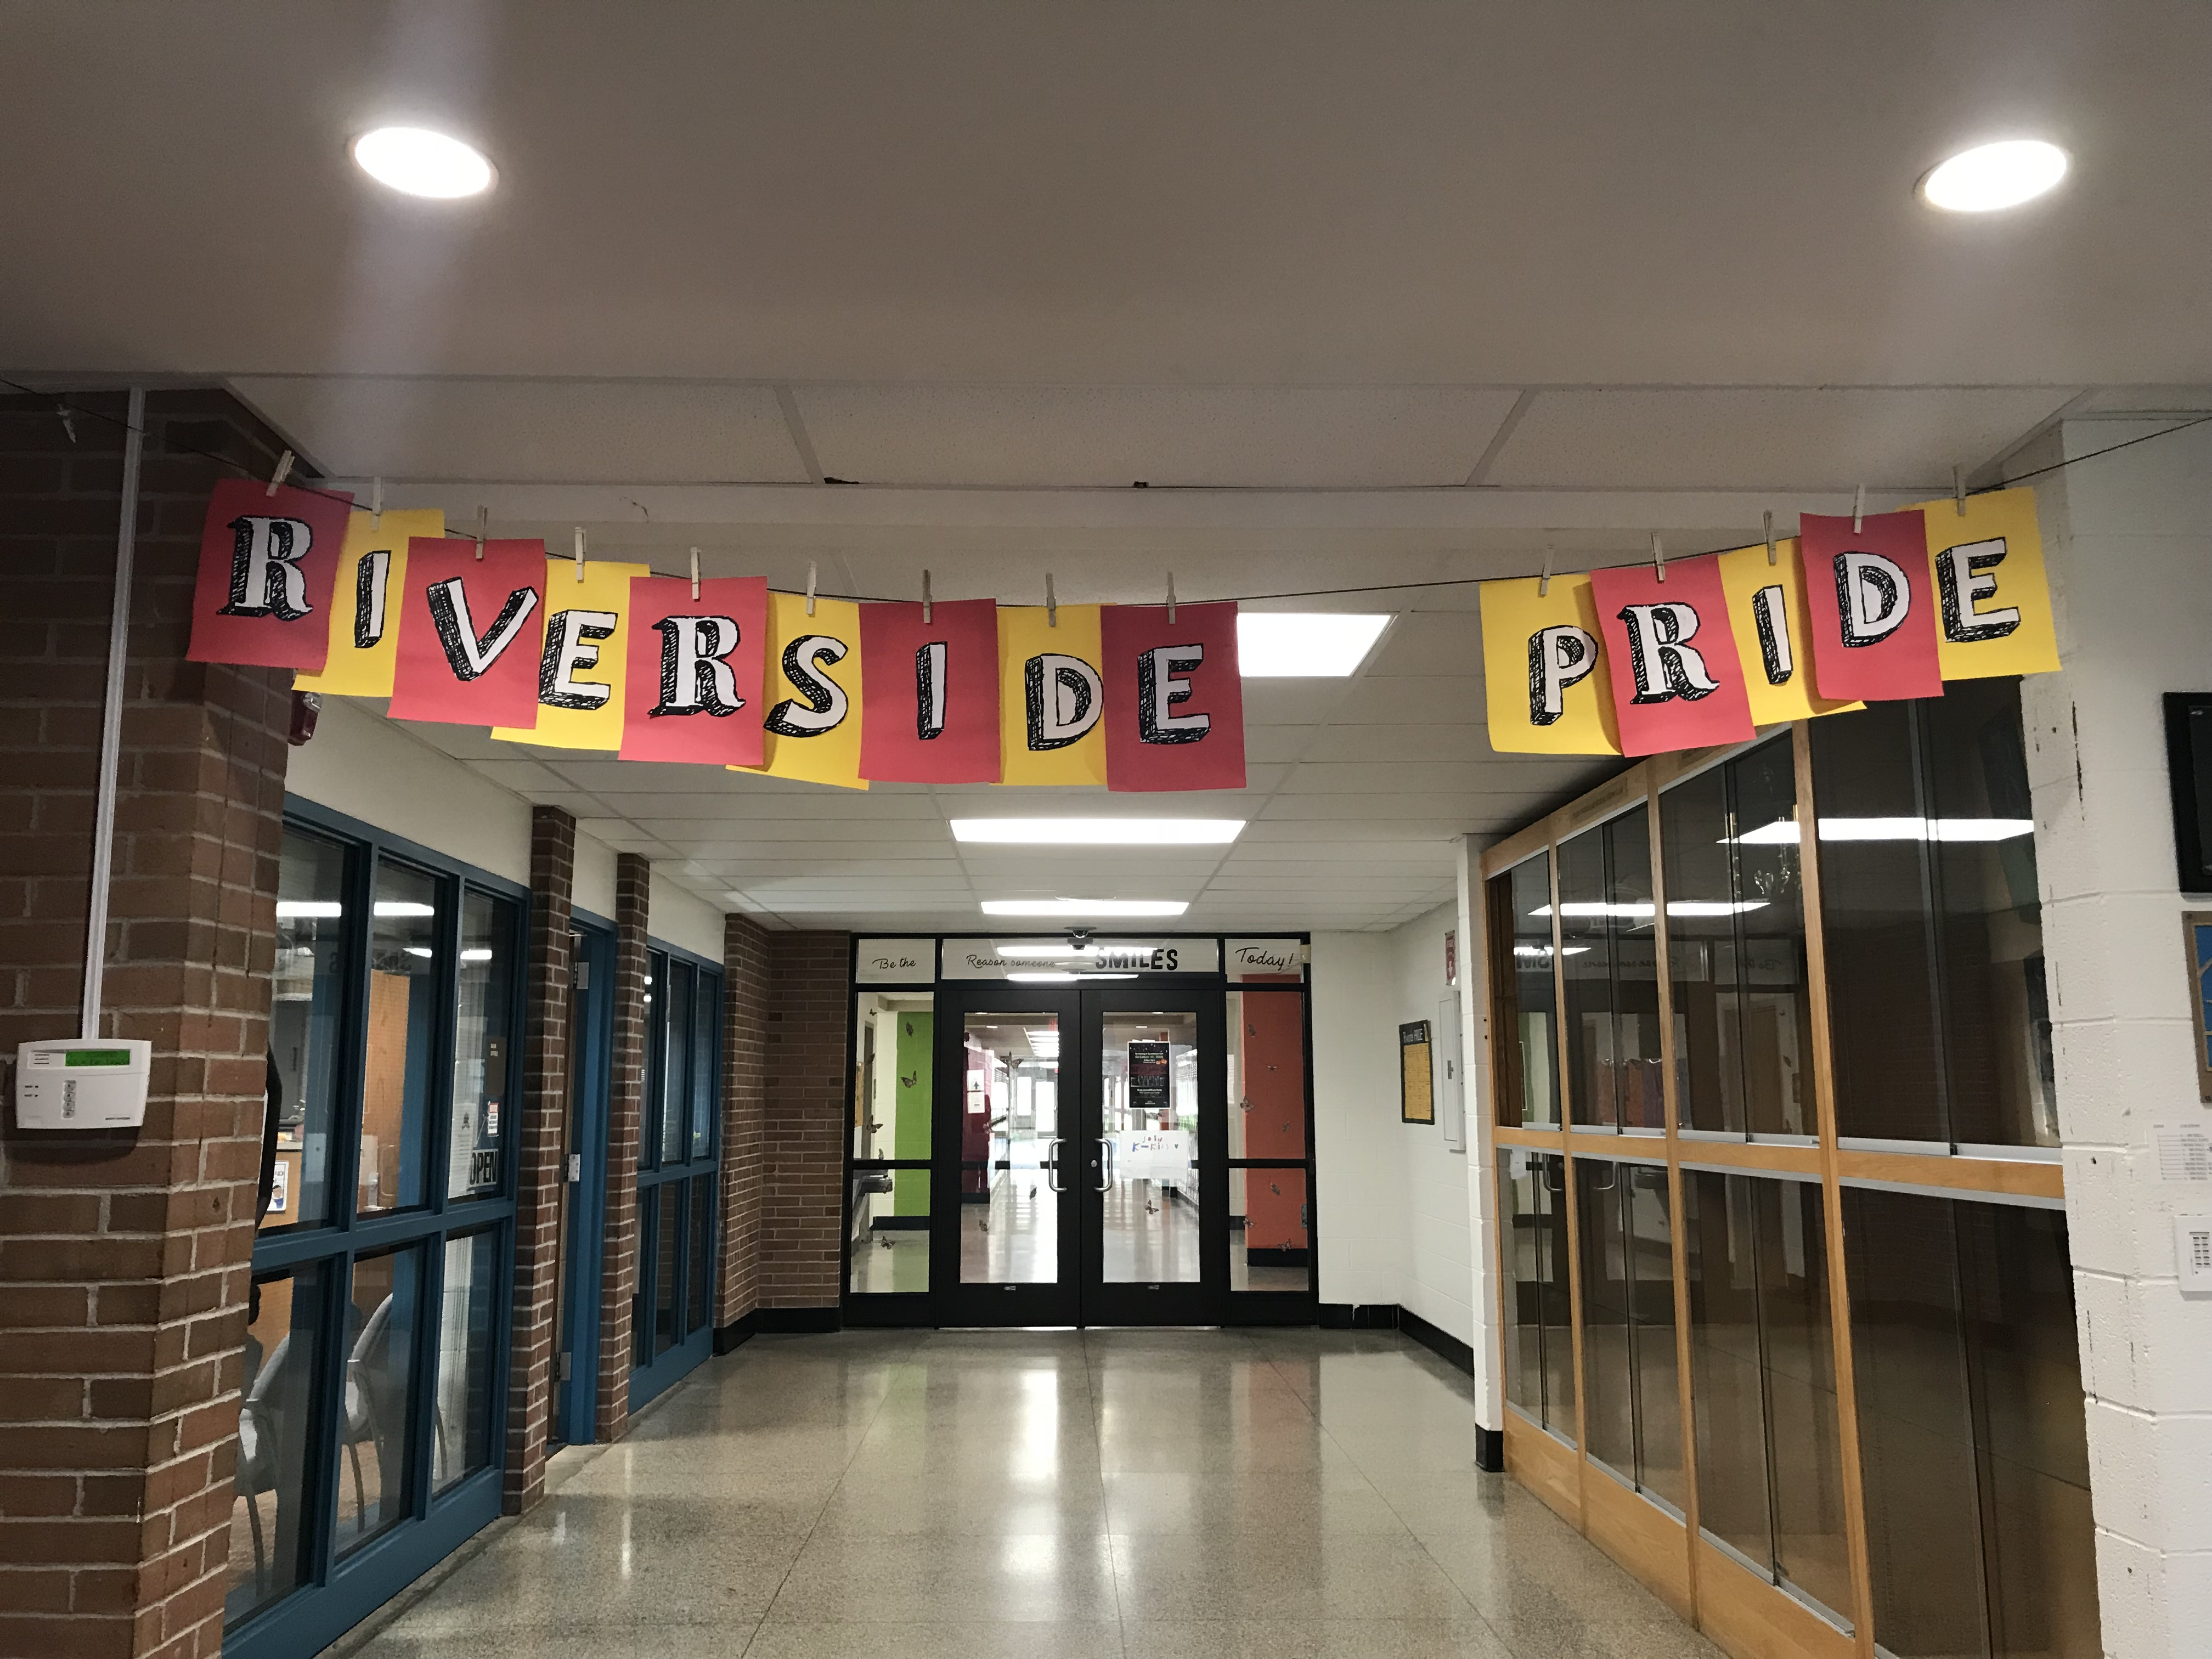 Entryway for Riverside Intermediate School. Has a banner saying